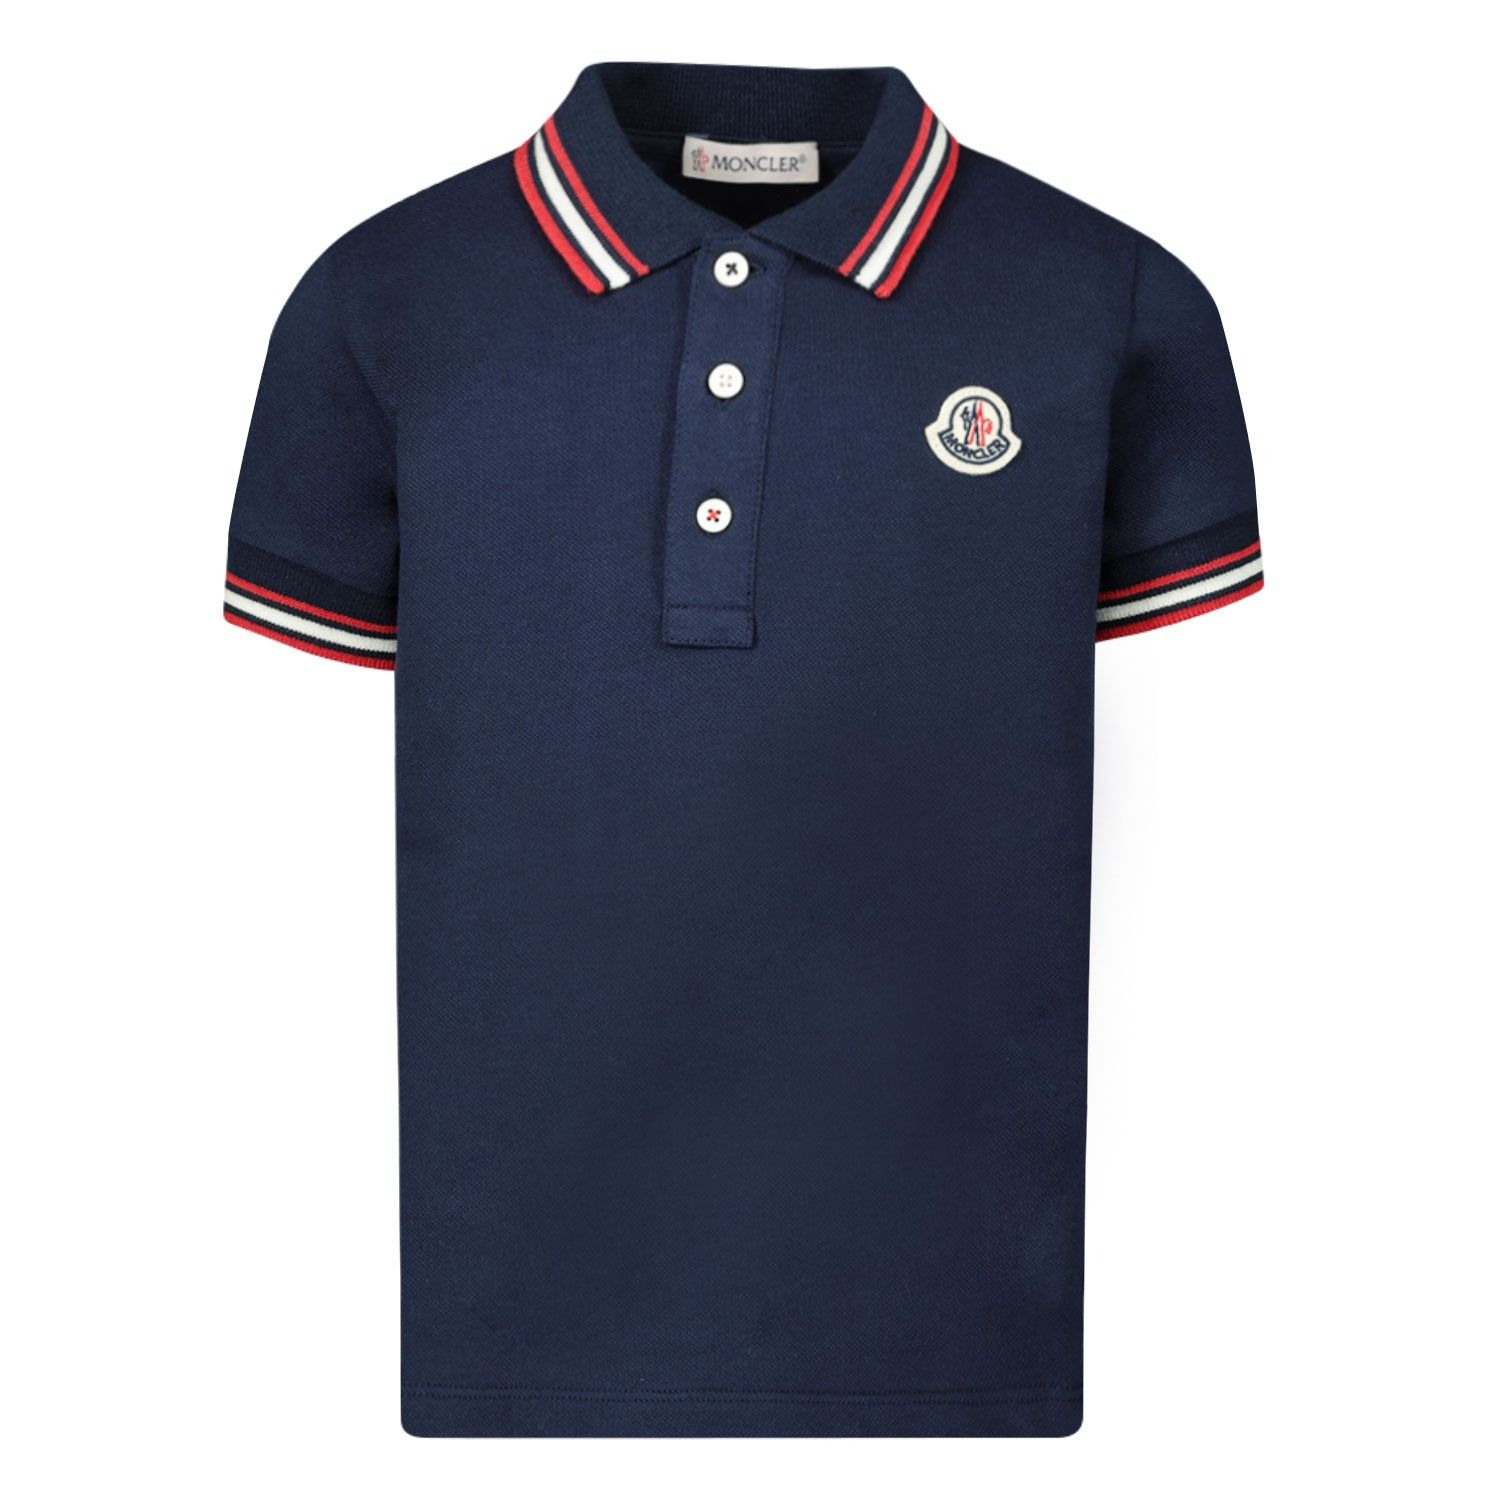 Picture of Moncler 8A70320 baby poloshirt navy